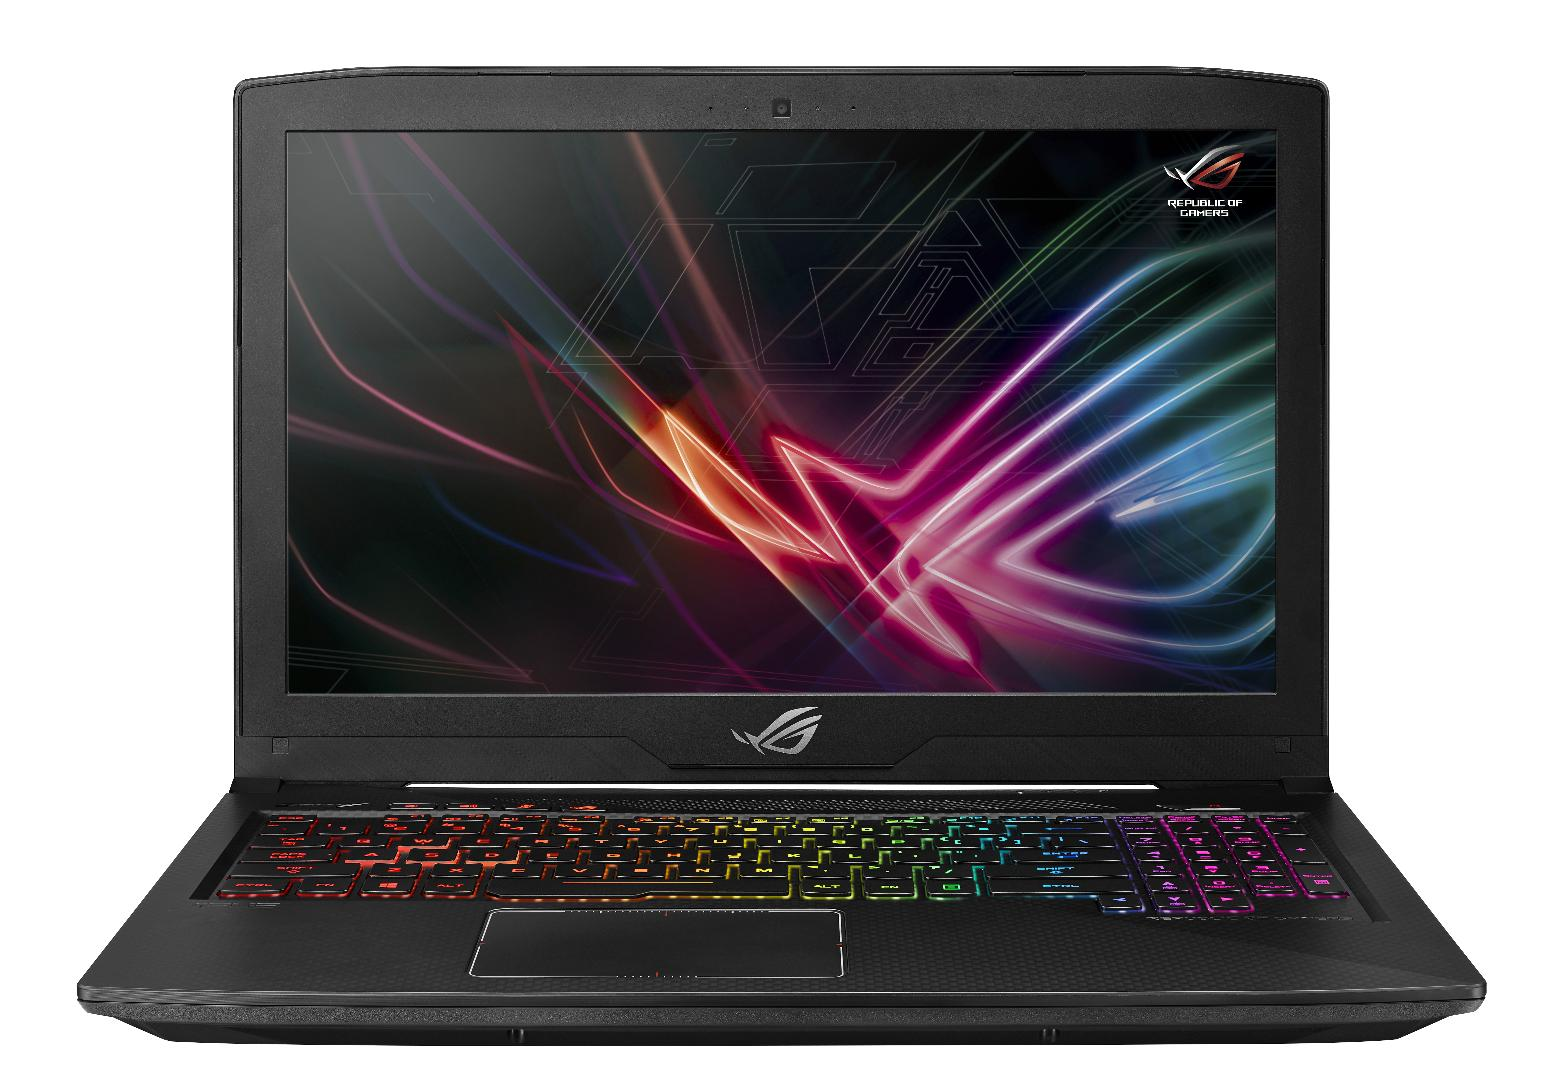 ASUS ROG Strix Scar Edition GL503GE-RS71 15.6 Premium Gaming & Business Laptop (Intel 8th Gen Coffee Lake i7-8750H, 32GB... by MichaelElectronics2